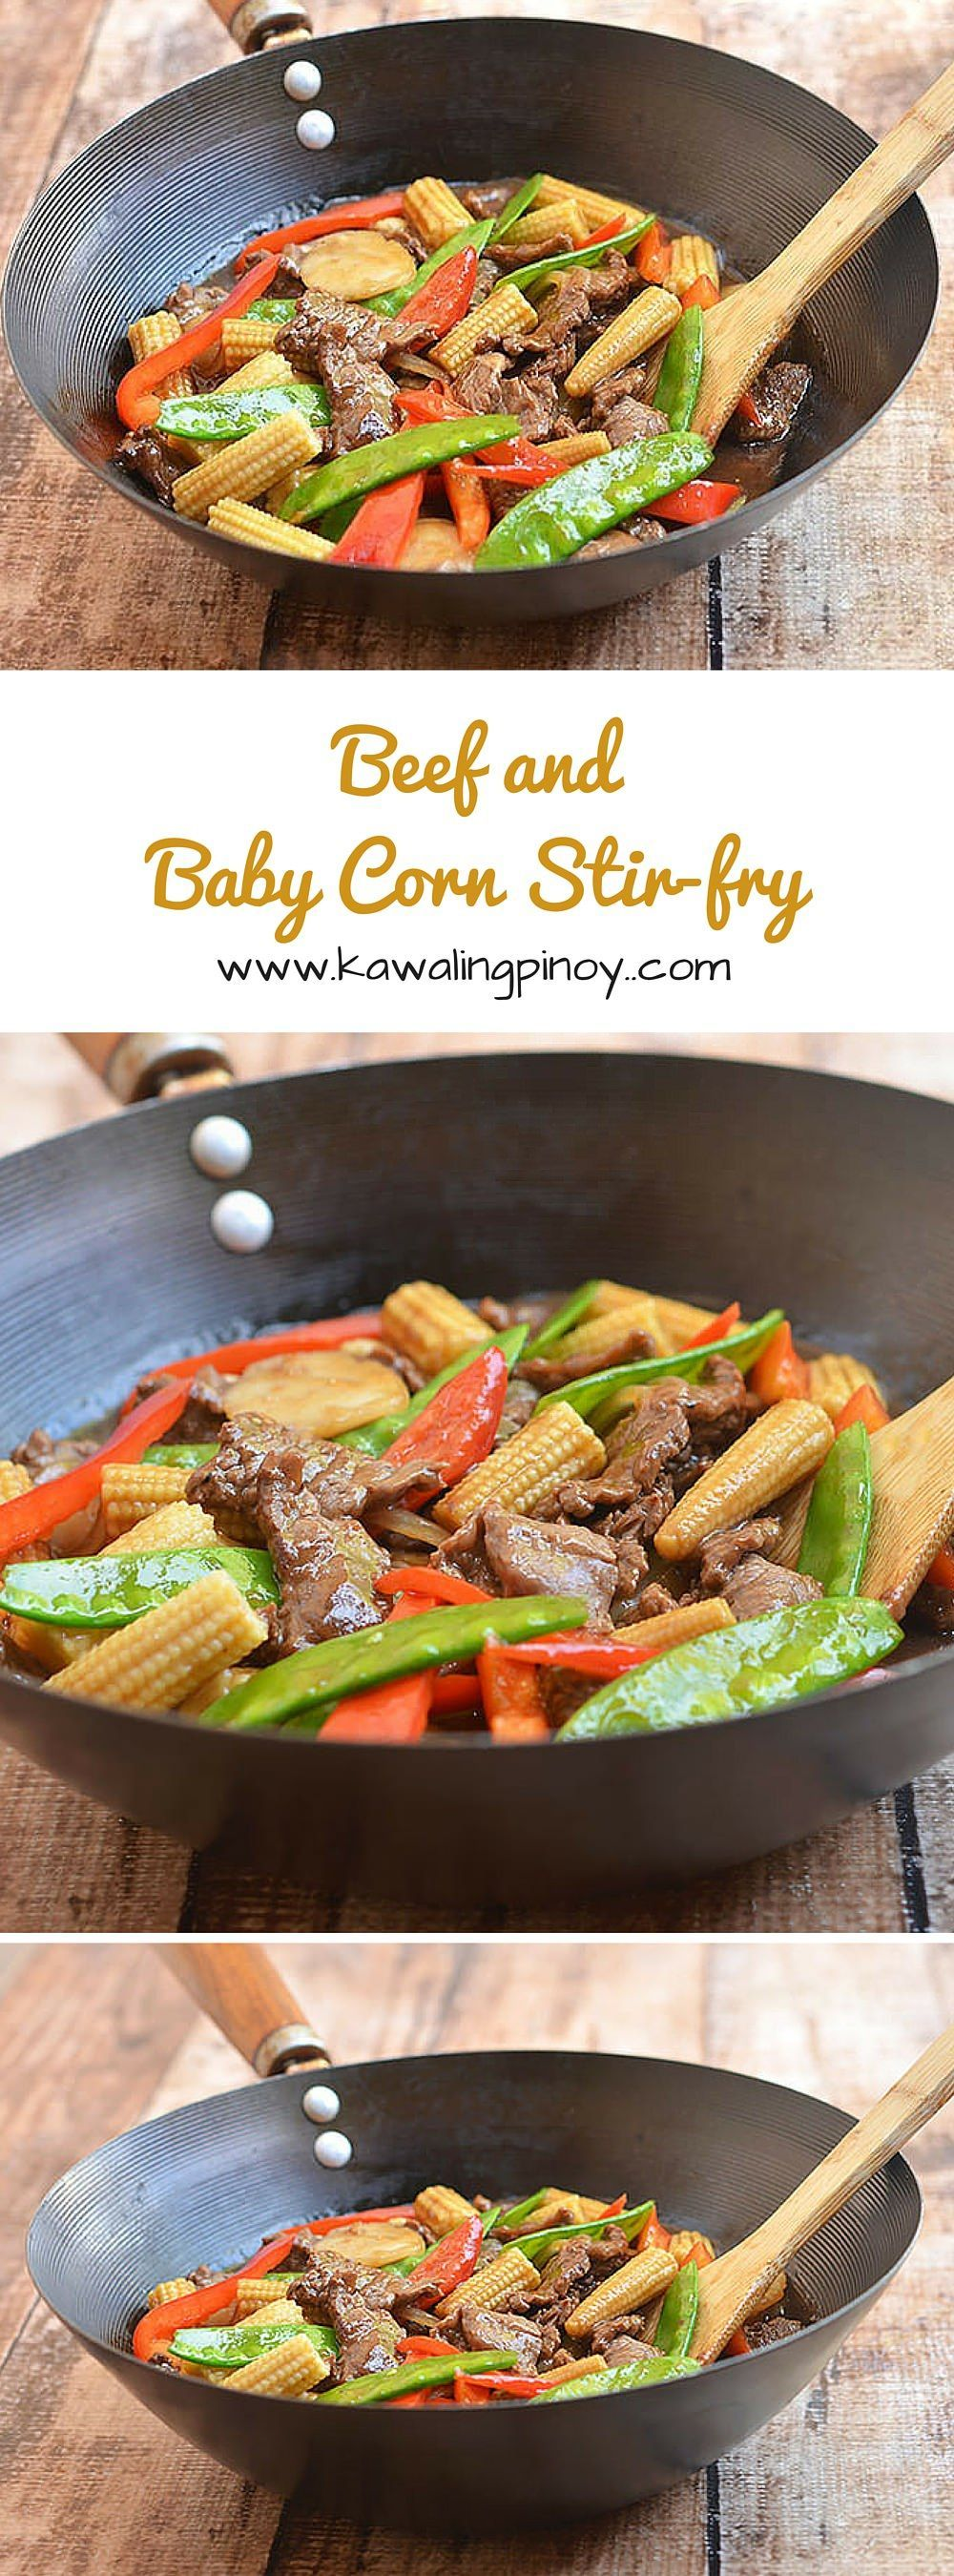 and Baby Corn Stir-fry Beef and Baby Corn Stir-fry is a quick and easy dinner meal made with succulent beef sirloin, tender young corn, crisp veggies and a sweet and savory brown sauceBeef and Baby Corn Stir-fry is a quick and easy dinner meal made with succulent beef sirloin, tender young corn, crisp veggies and a sweet and savory brown sauce